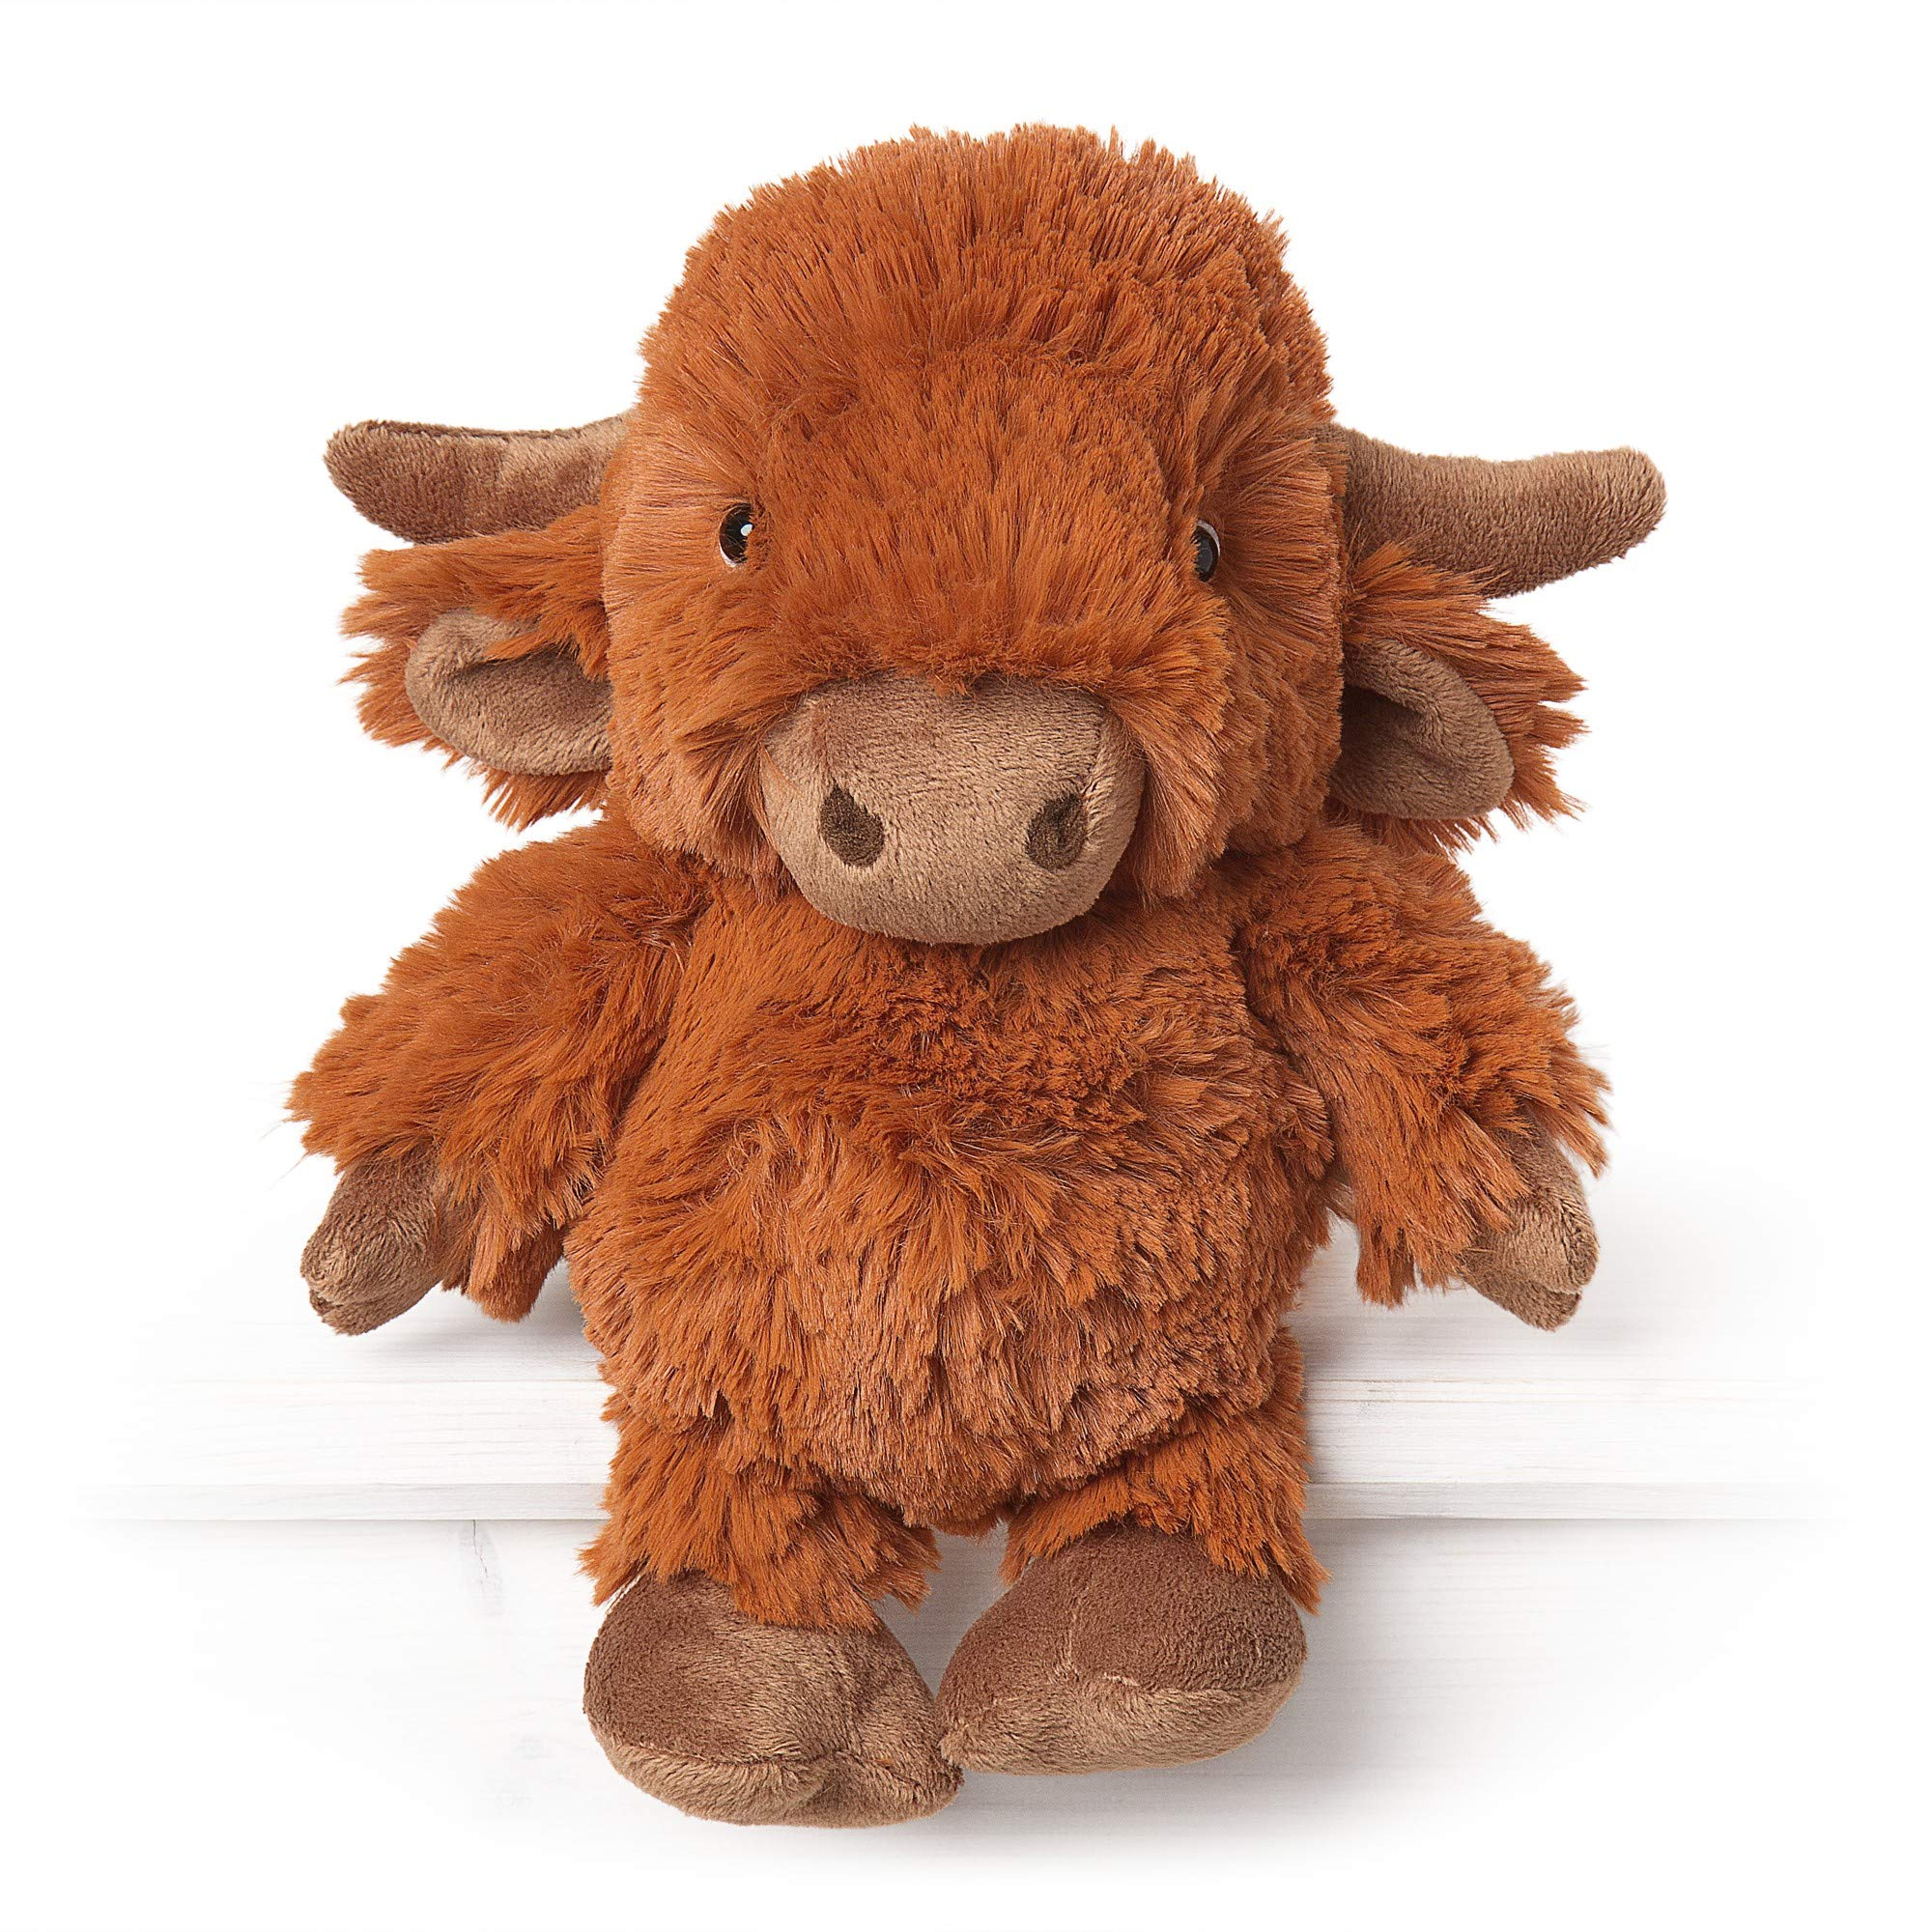 All Creatures AP6QF009 All Hamish The Highland - Peluche de Vaca (tamaño Mediano): Amazon.es: Juguetes y juegos